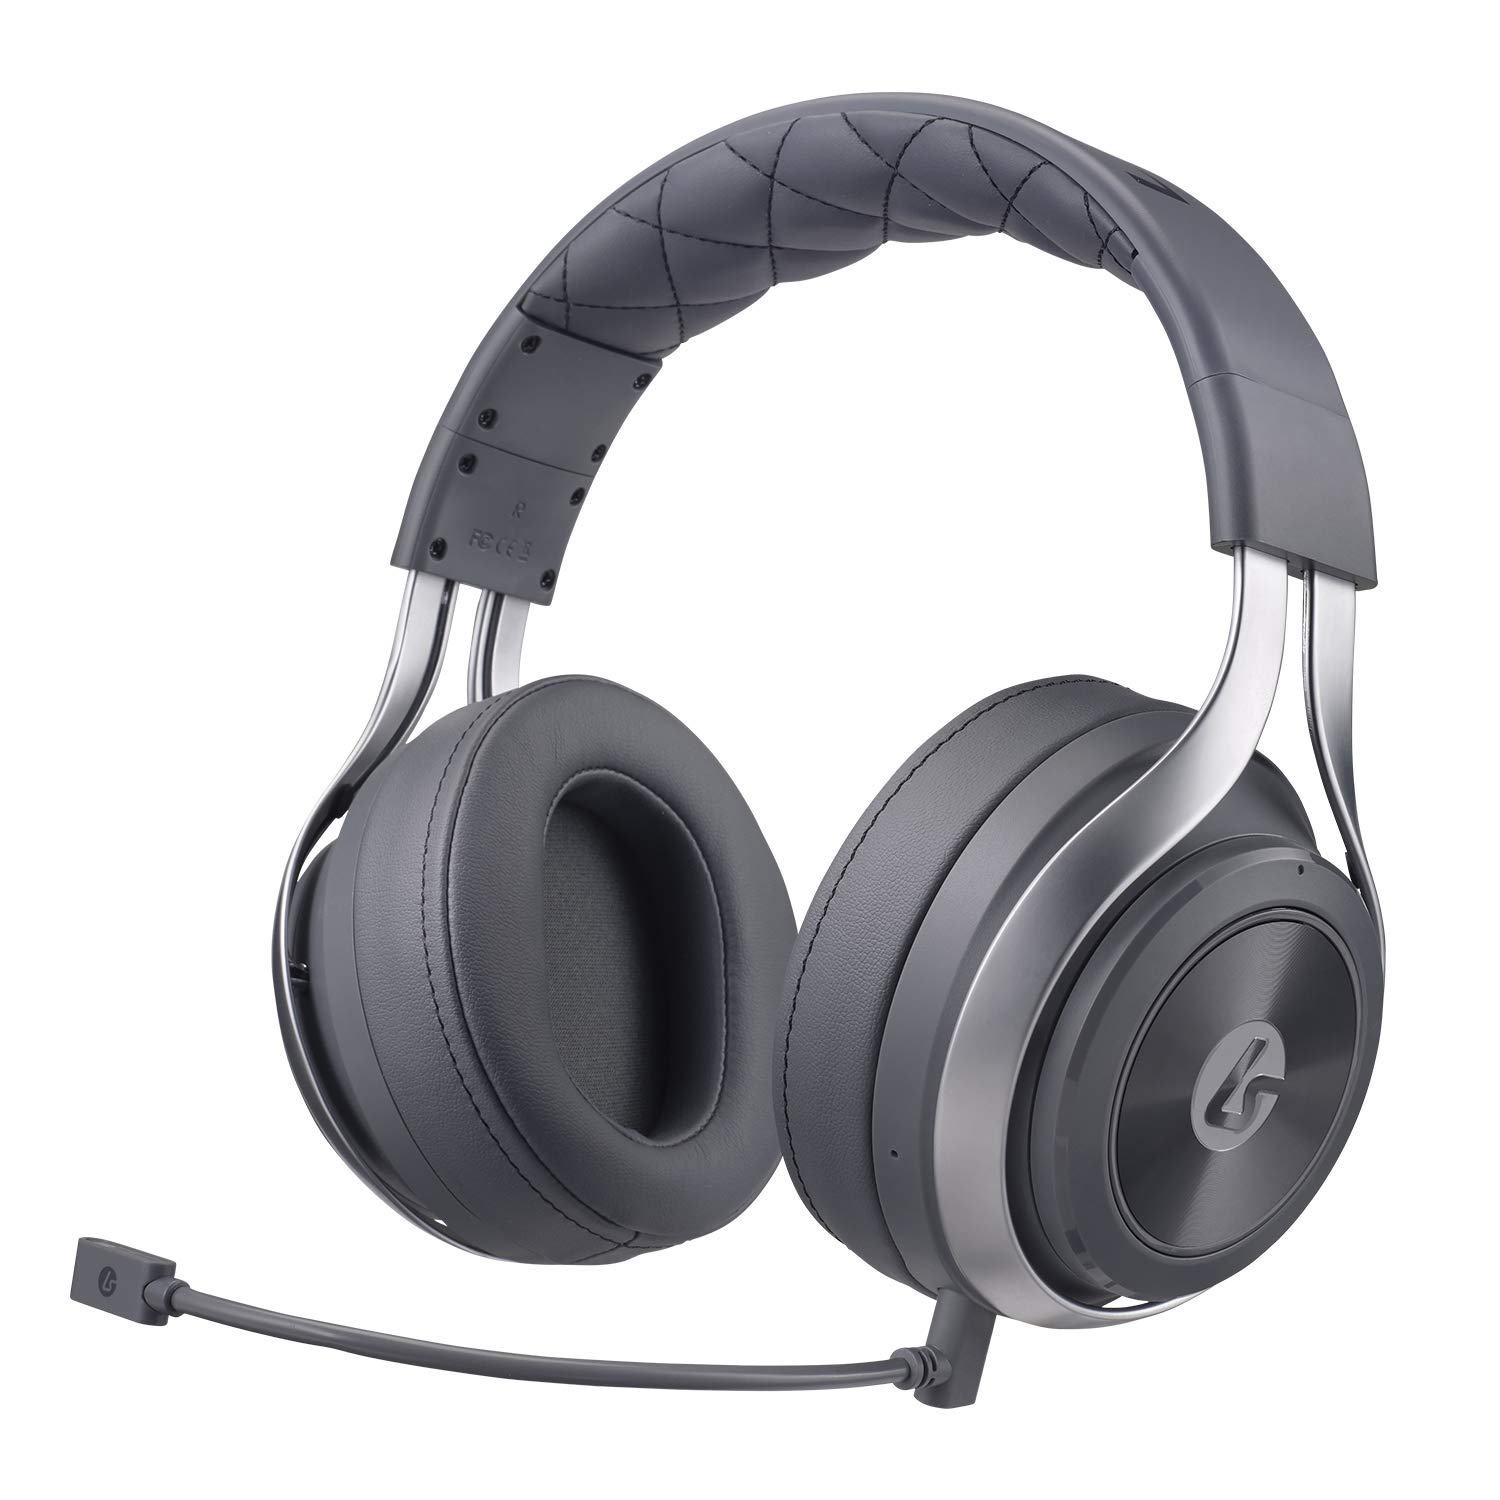 Amazon.com: LucidSound LS31 Wireless Gaming Headset for Xbox ...